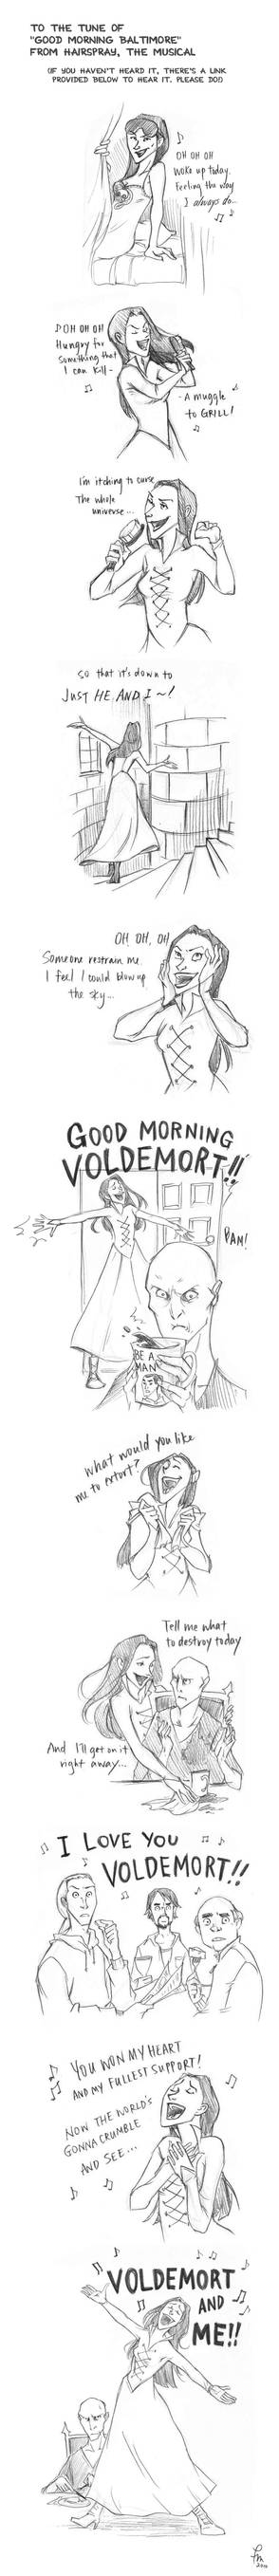 Good Morning Voldemort